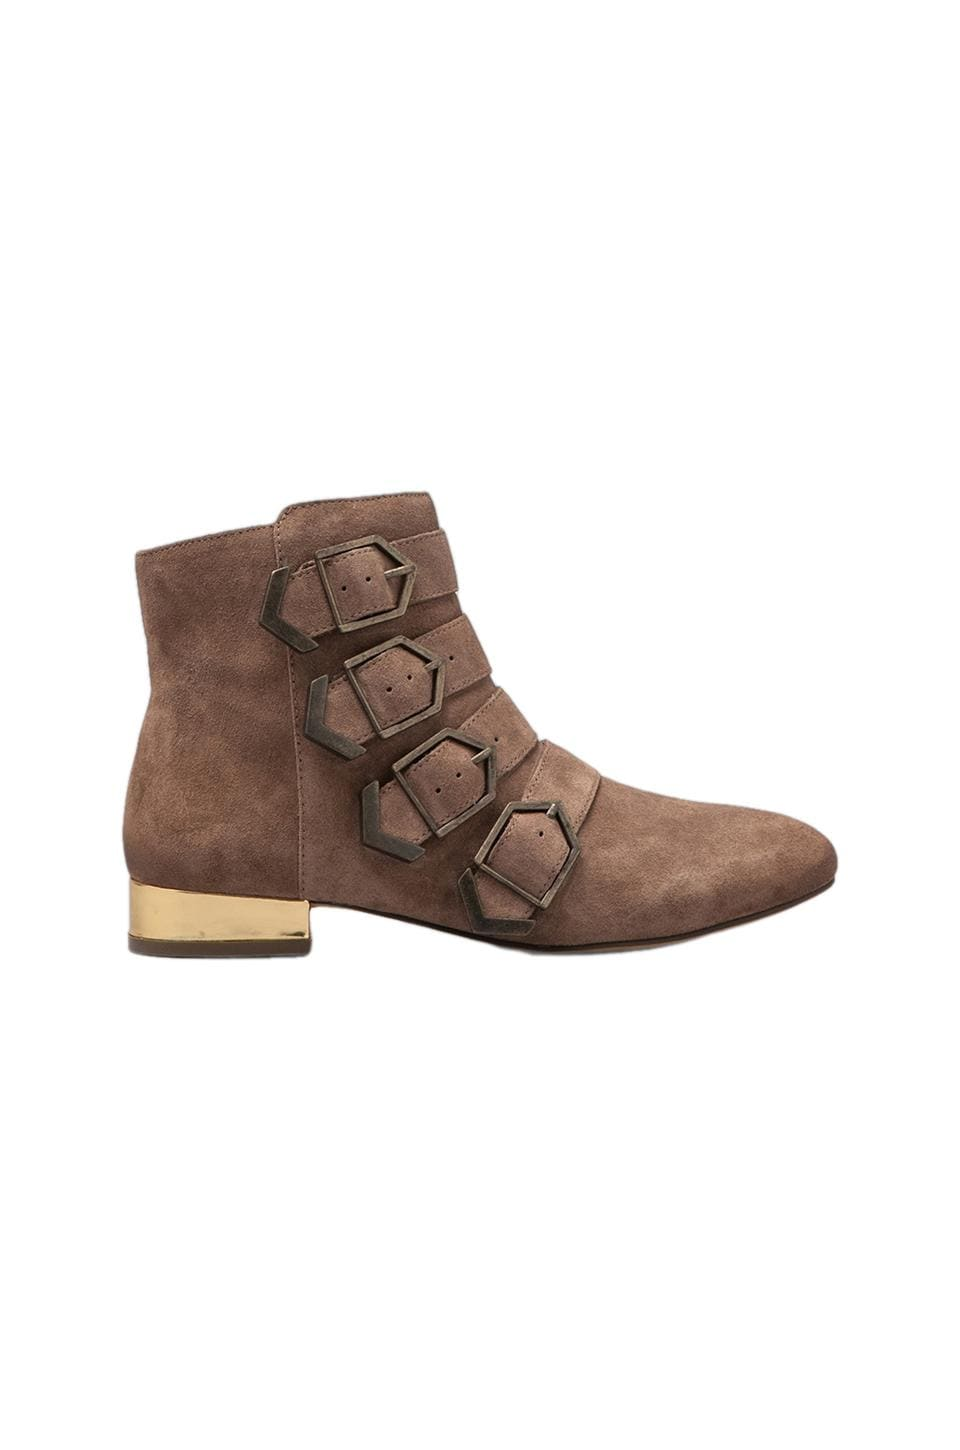 Sam Edelman Nolan Bootie in Beach